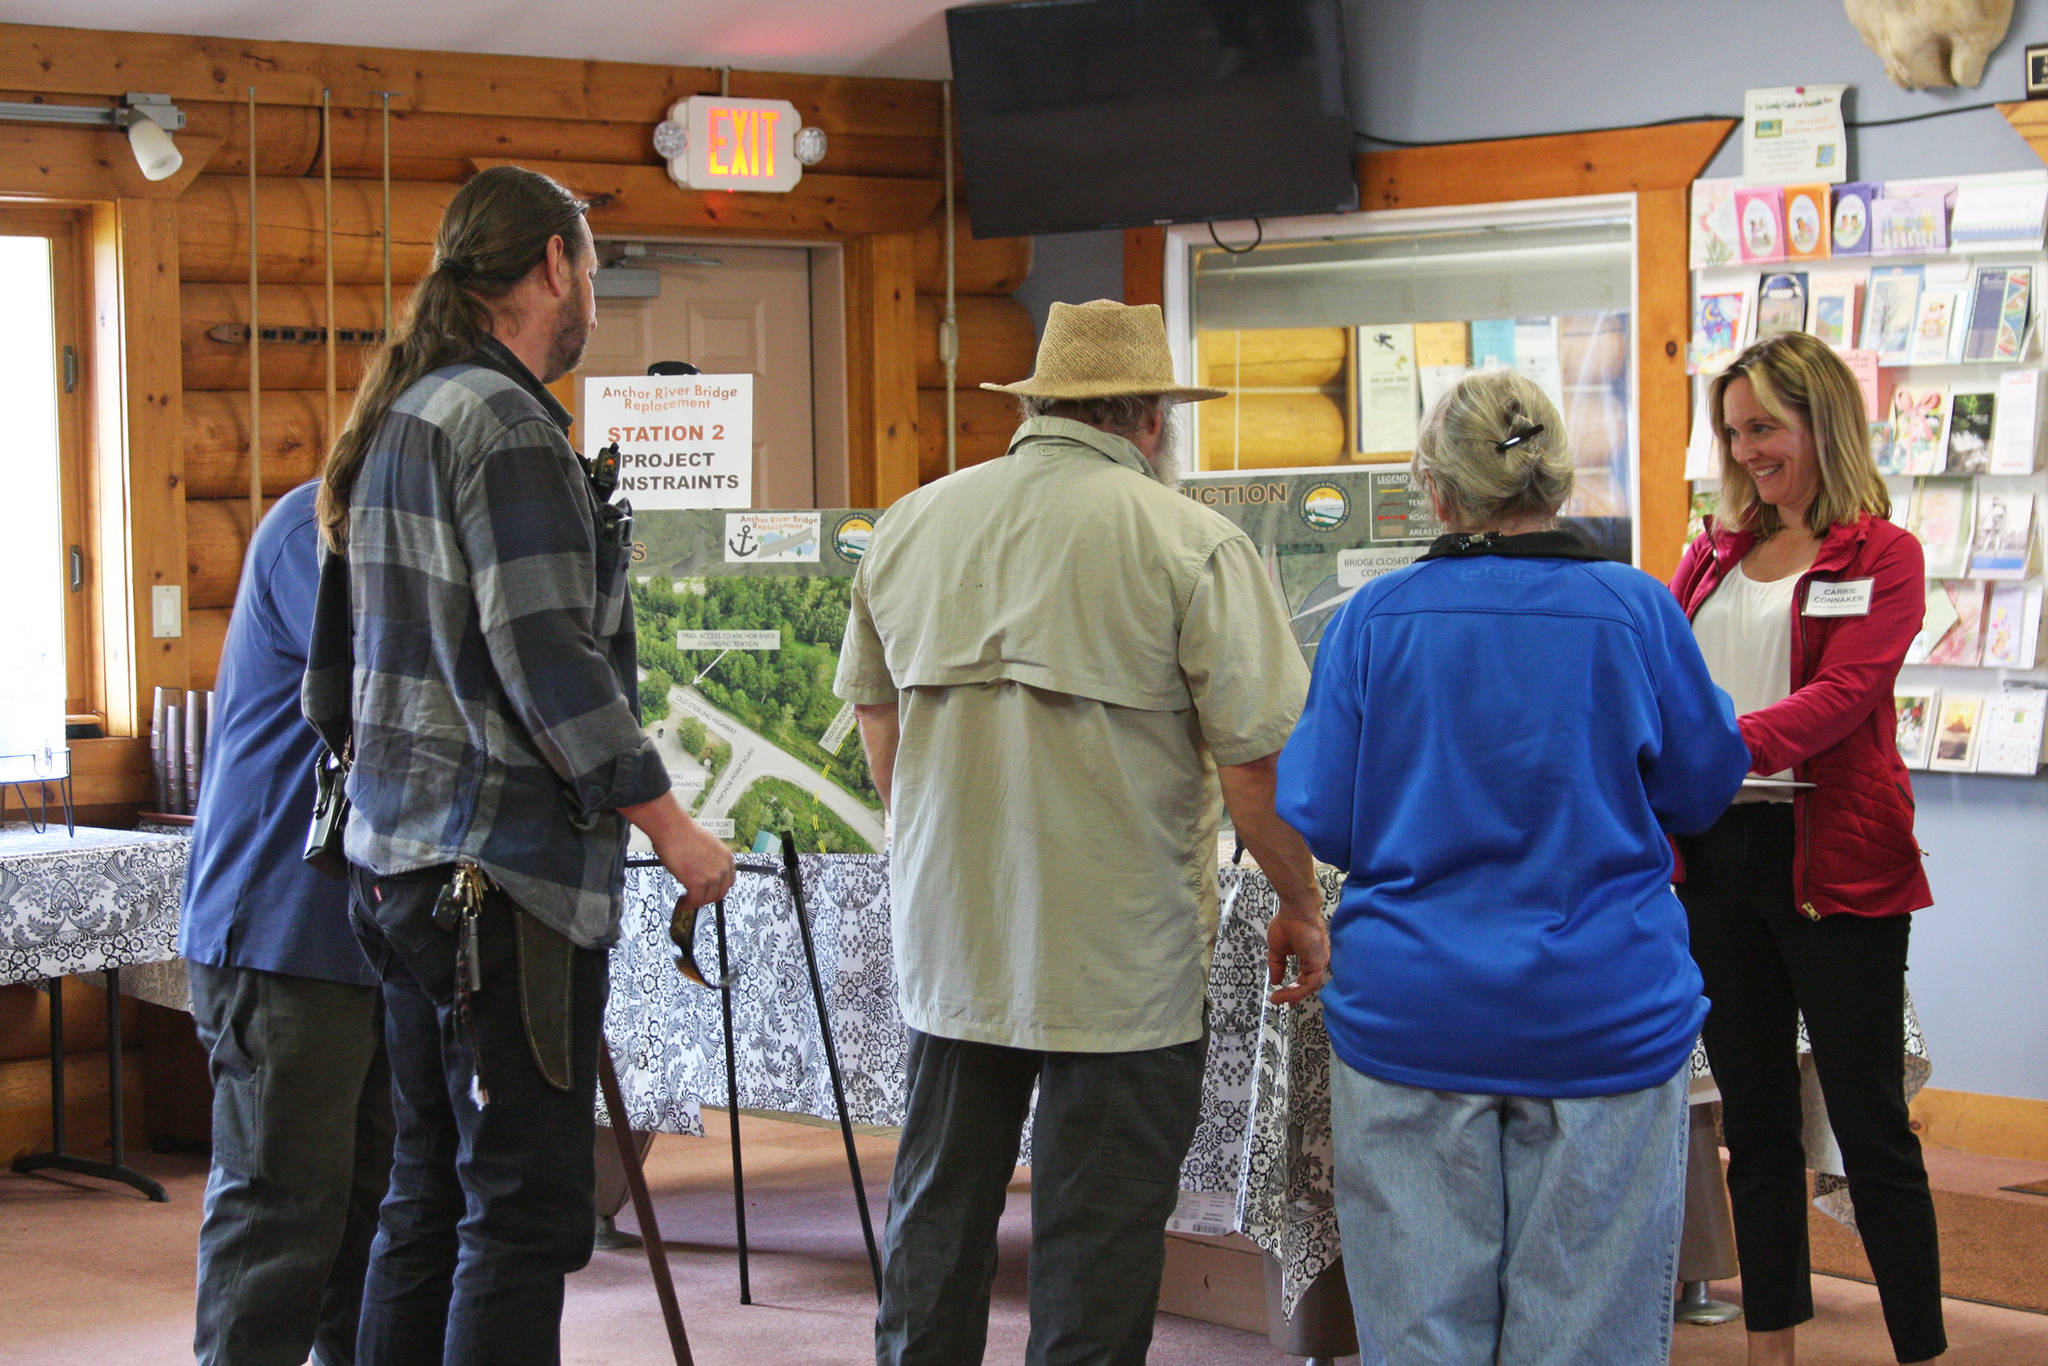 Local Anchor Point residents view the presentation and chat with Carrie Connaker from Solstice Alaska Consulting, Inc., at the open house for the Anchor River Bridge replacement project on Tuesday, Aug. 20, 2019 at the Anchor Point Senior Center in Anchor Point, Alaska. (Photo by Delcenia Cosman)